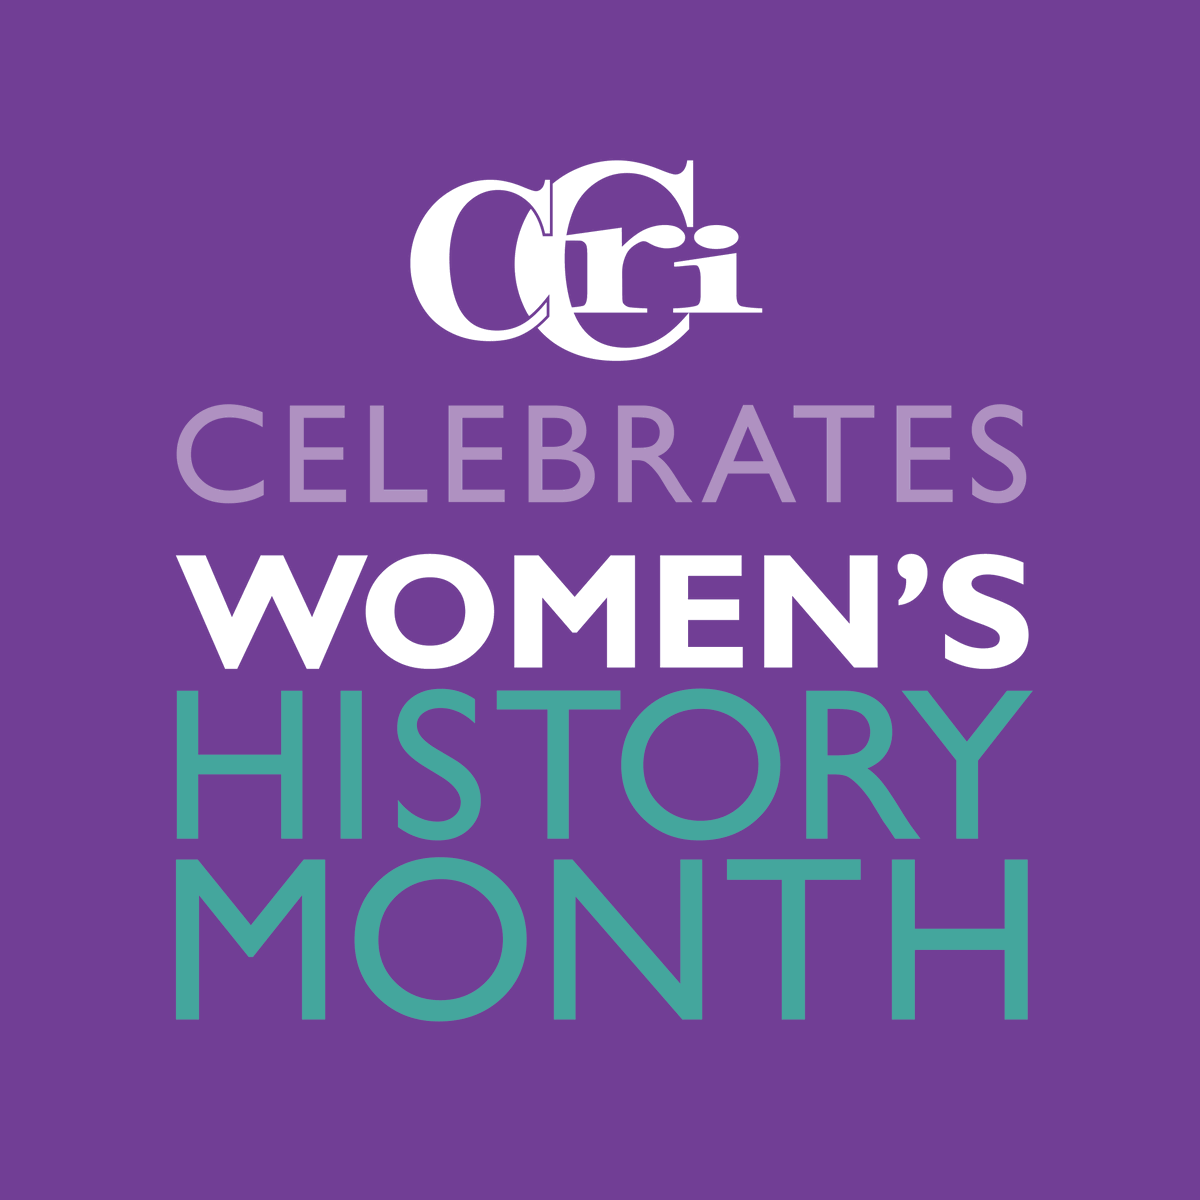 Today marks the start of Women's History Month! Join us in commemorating and encouraging the study, observance, and celebration of the vital role of women in American history. #WomensHistoryMonth